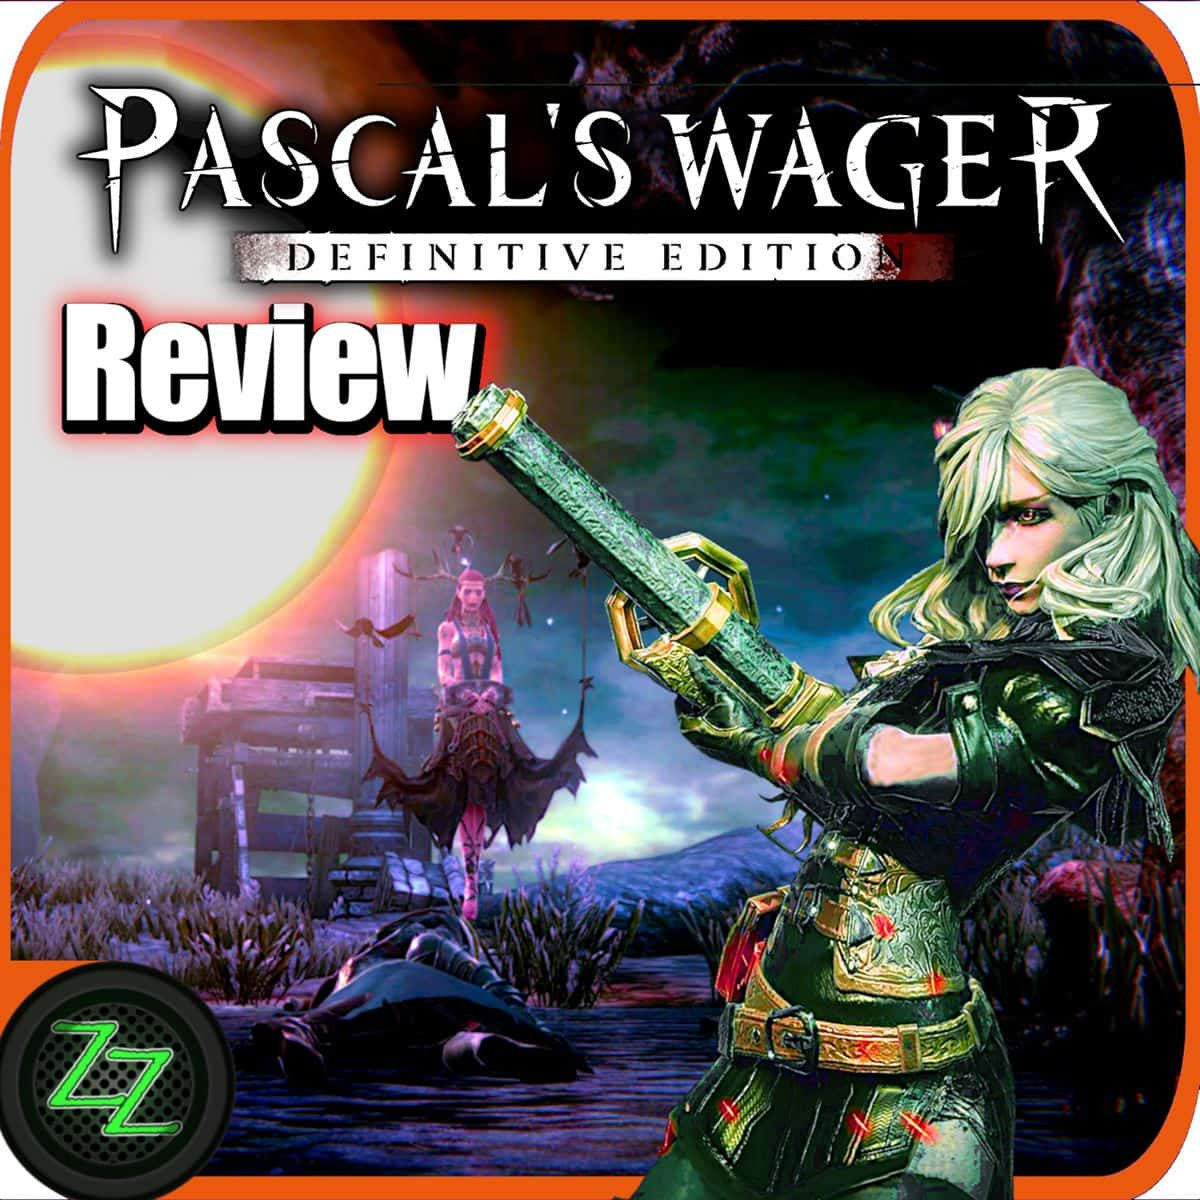 Pascal's Wager Definitive Edition - Review - Soulslike RPG im Test - Title - Cover q